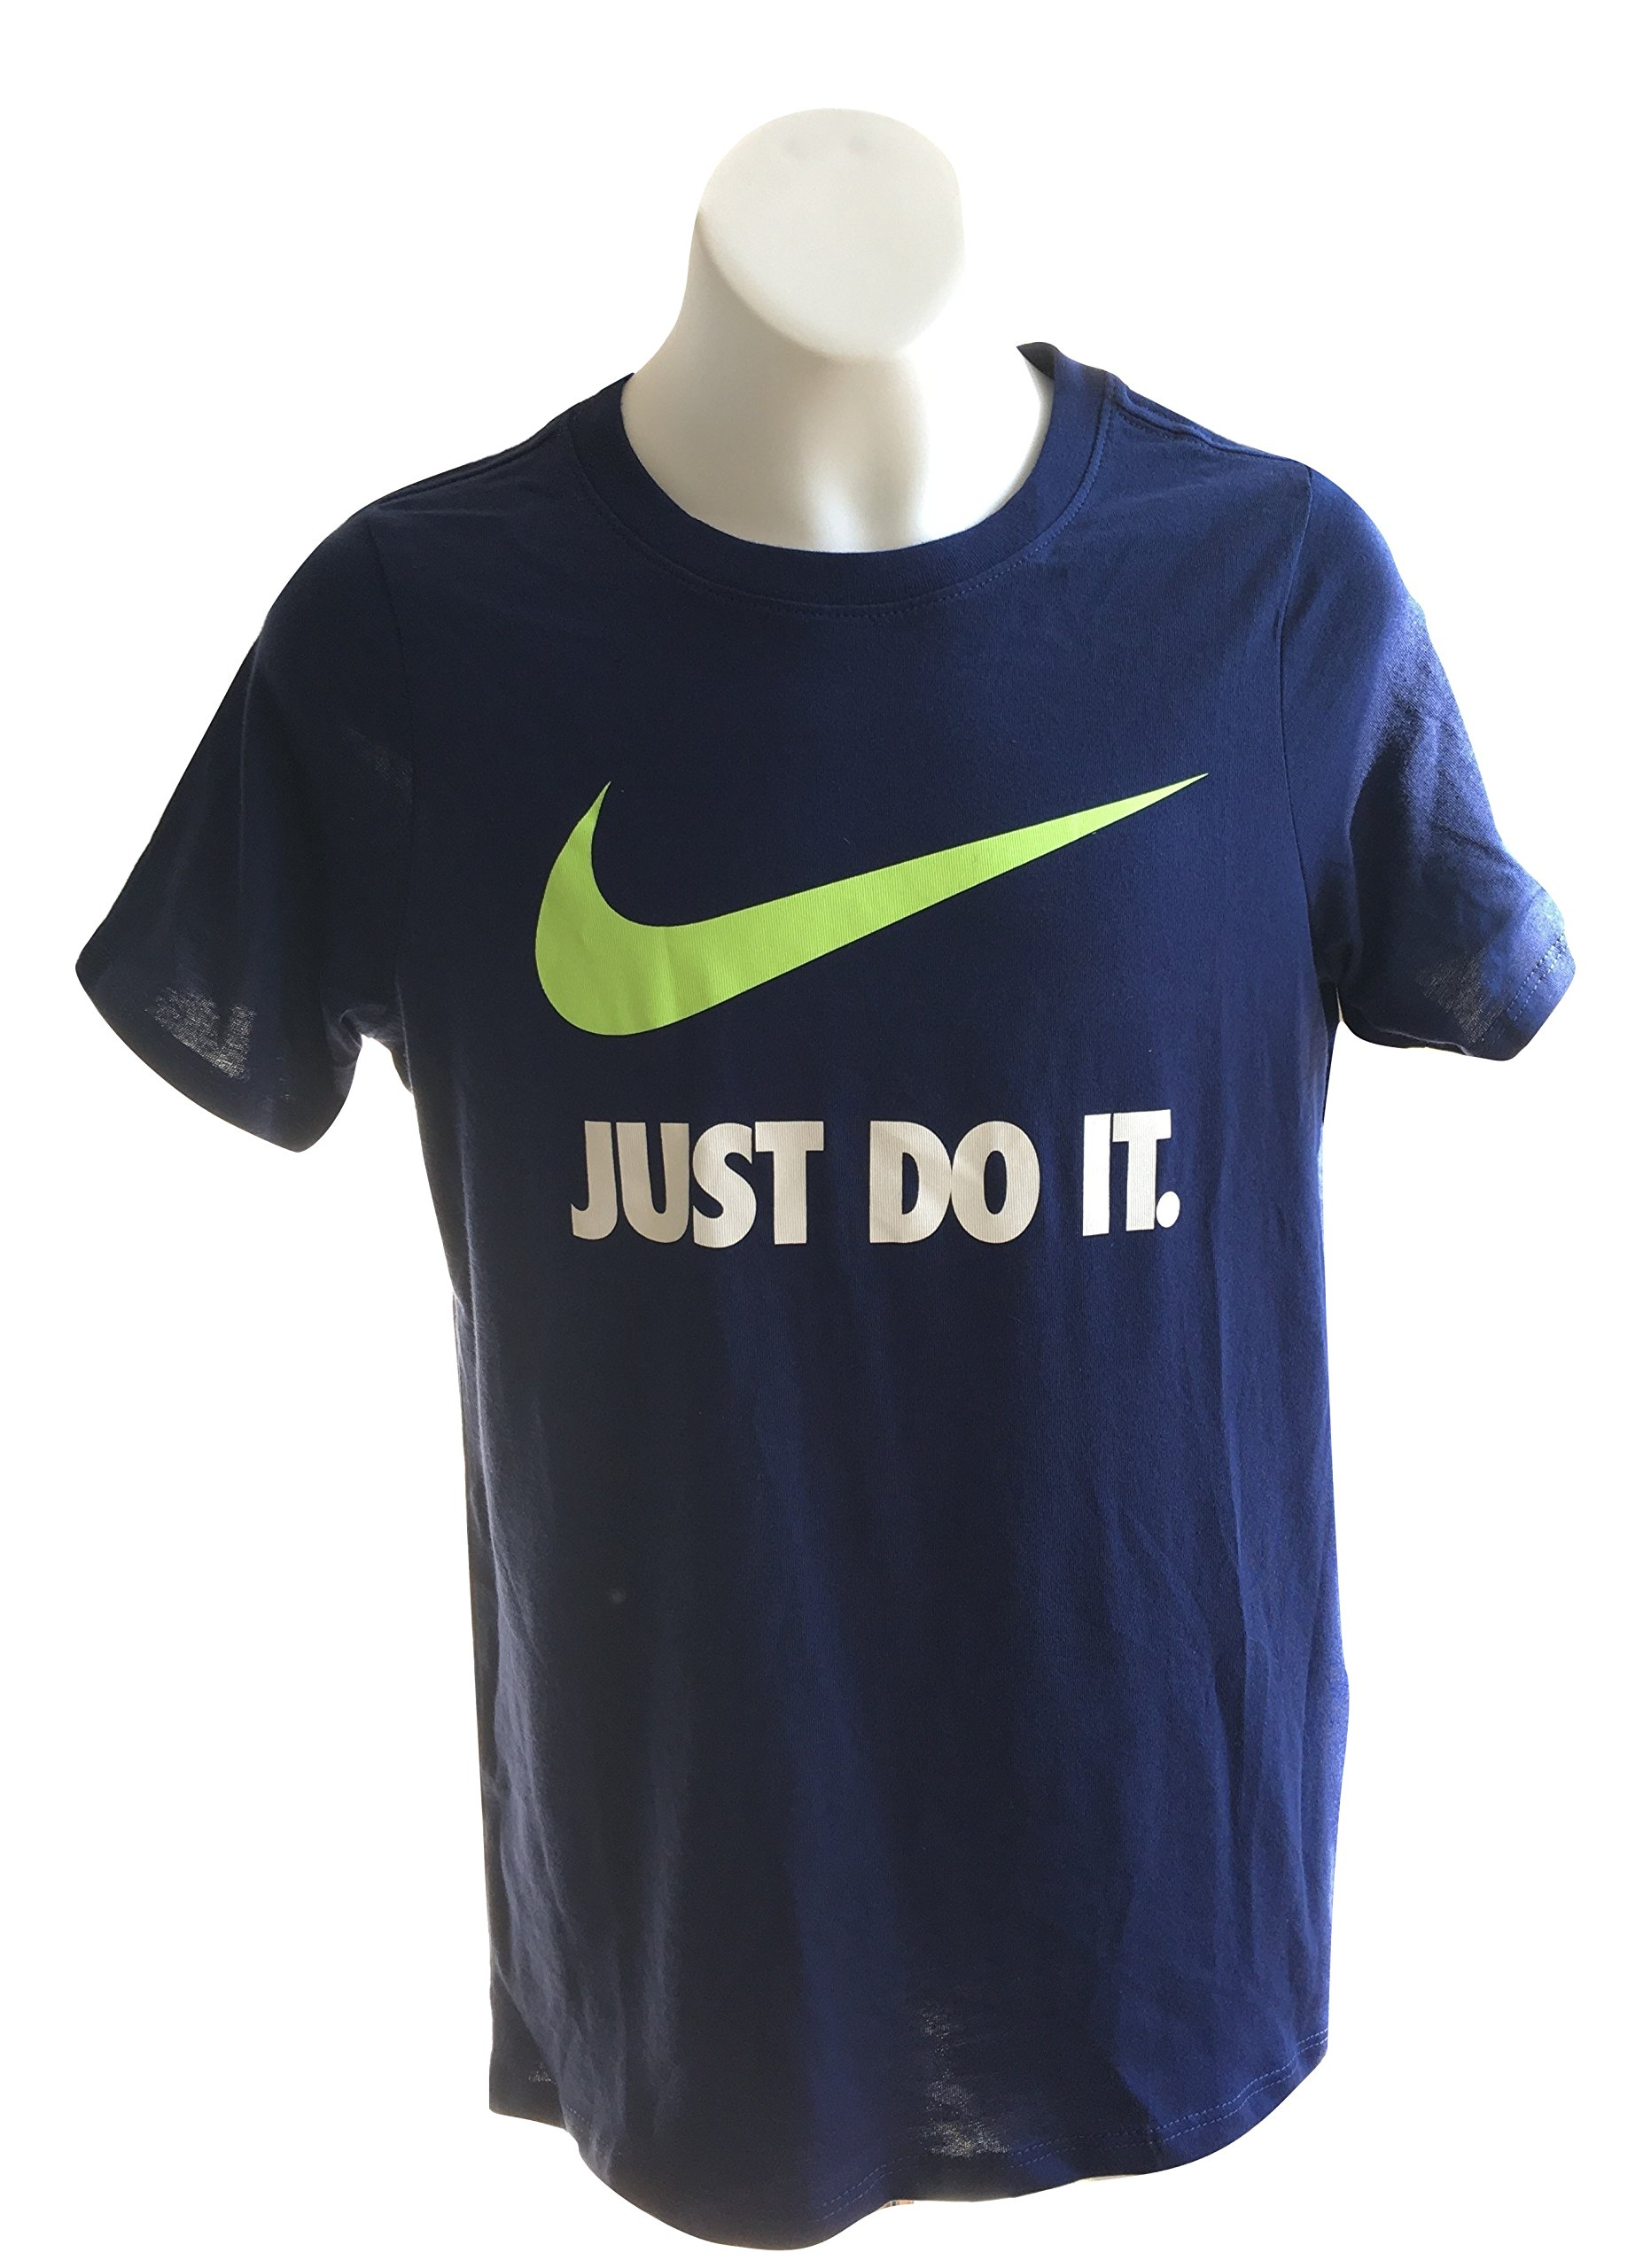 Nike Boy's T-Shirt 709952-430 Blue Just Do It (M, Blue/White/Volt)